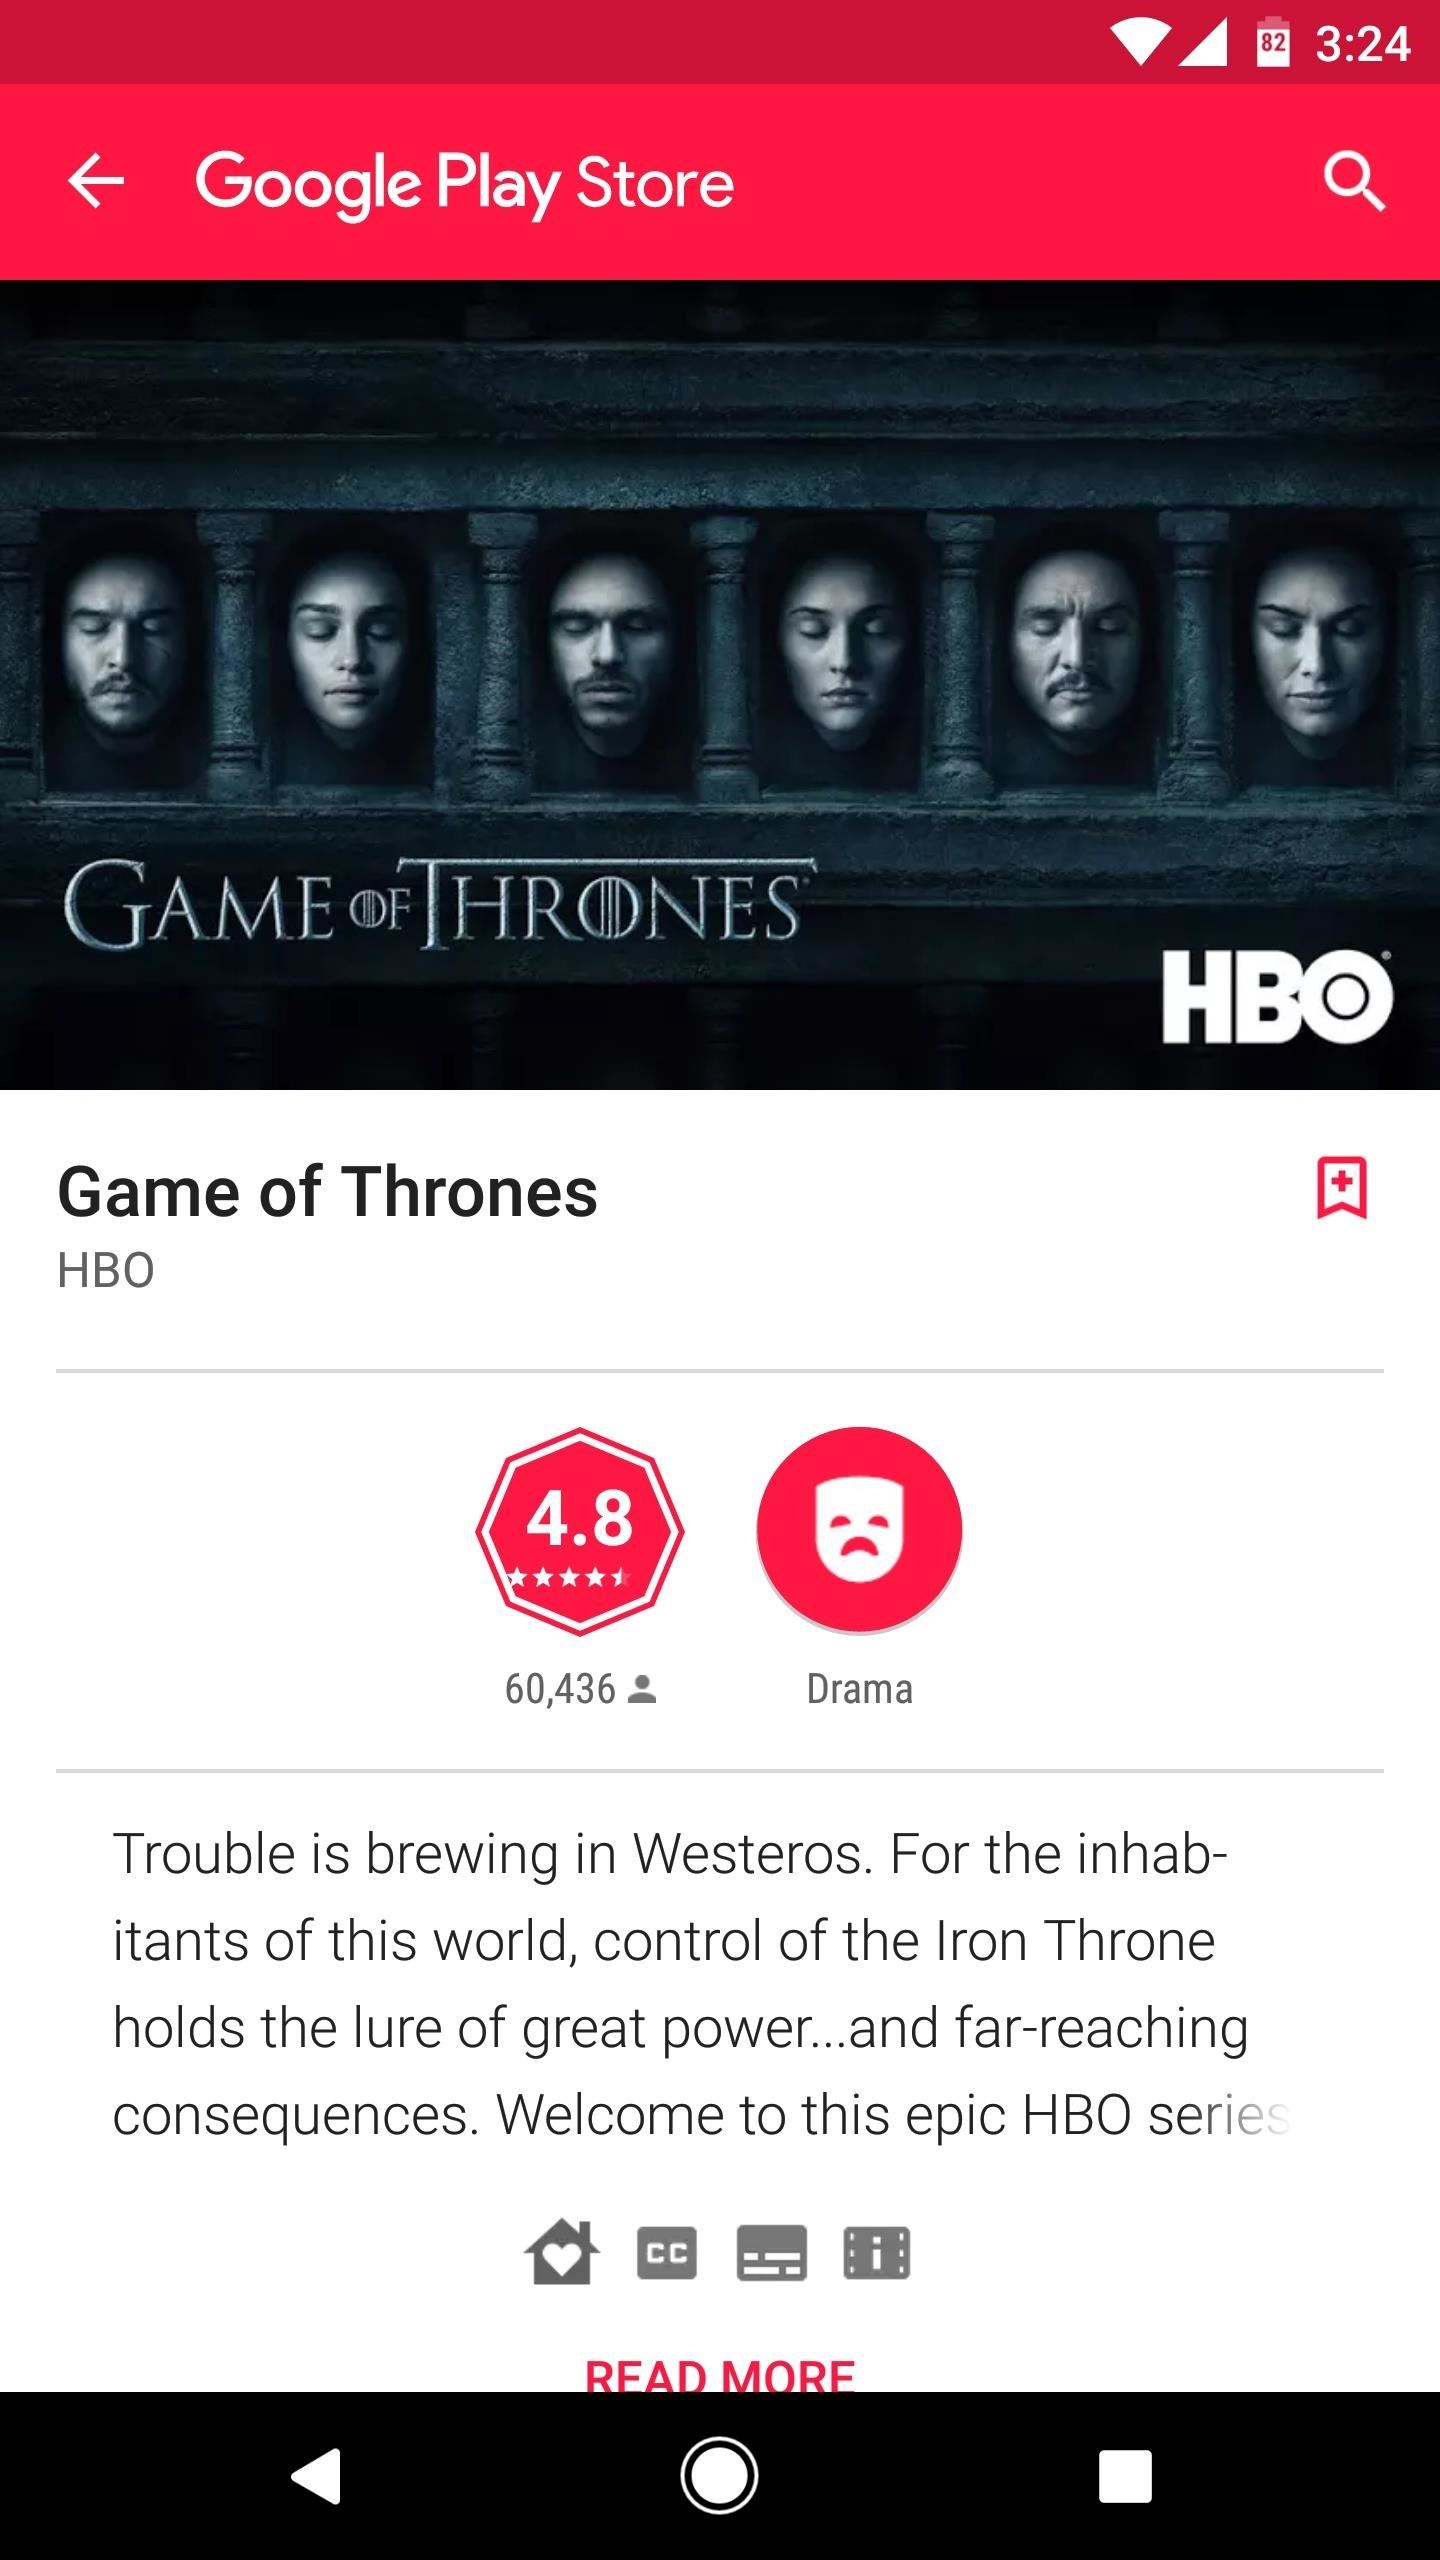 Google themes game of thrones -  And Then Choose Buy Sd To Save The Purchase To Your Google Play Library You Now Have An Entire Season Of Game Of Thrones To Watch At Your Leisure